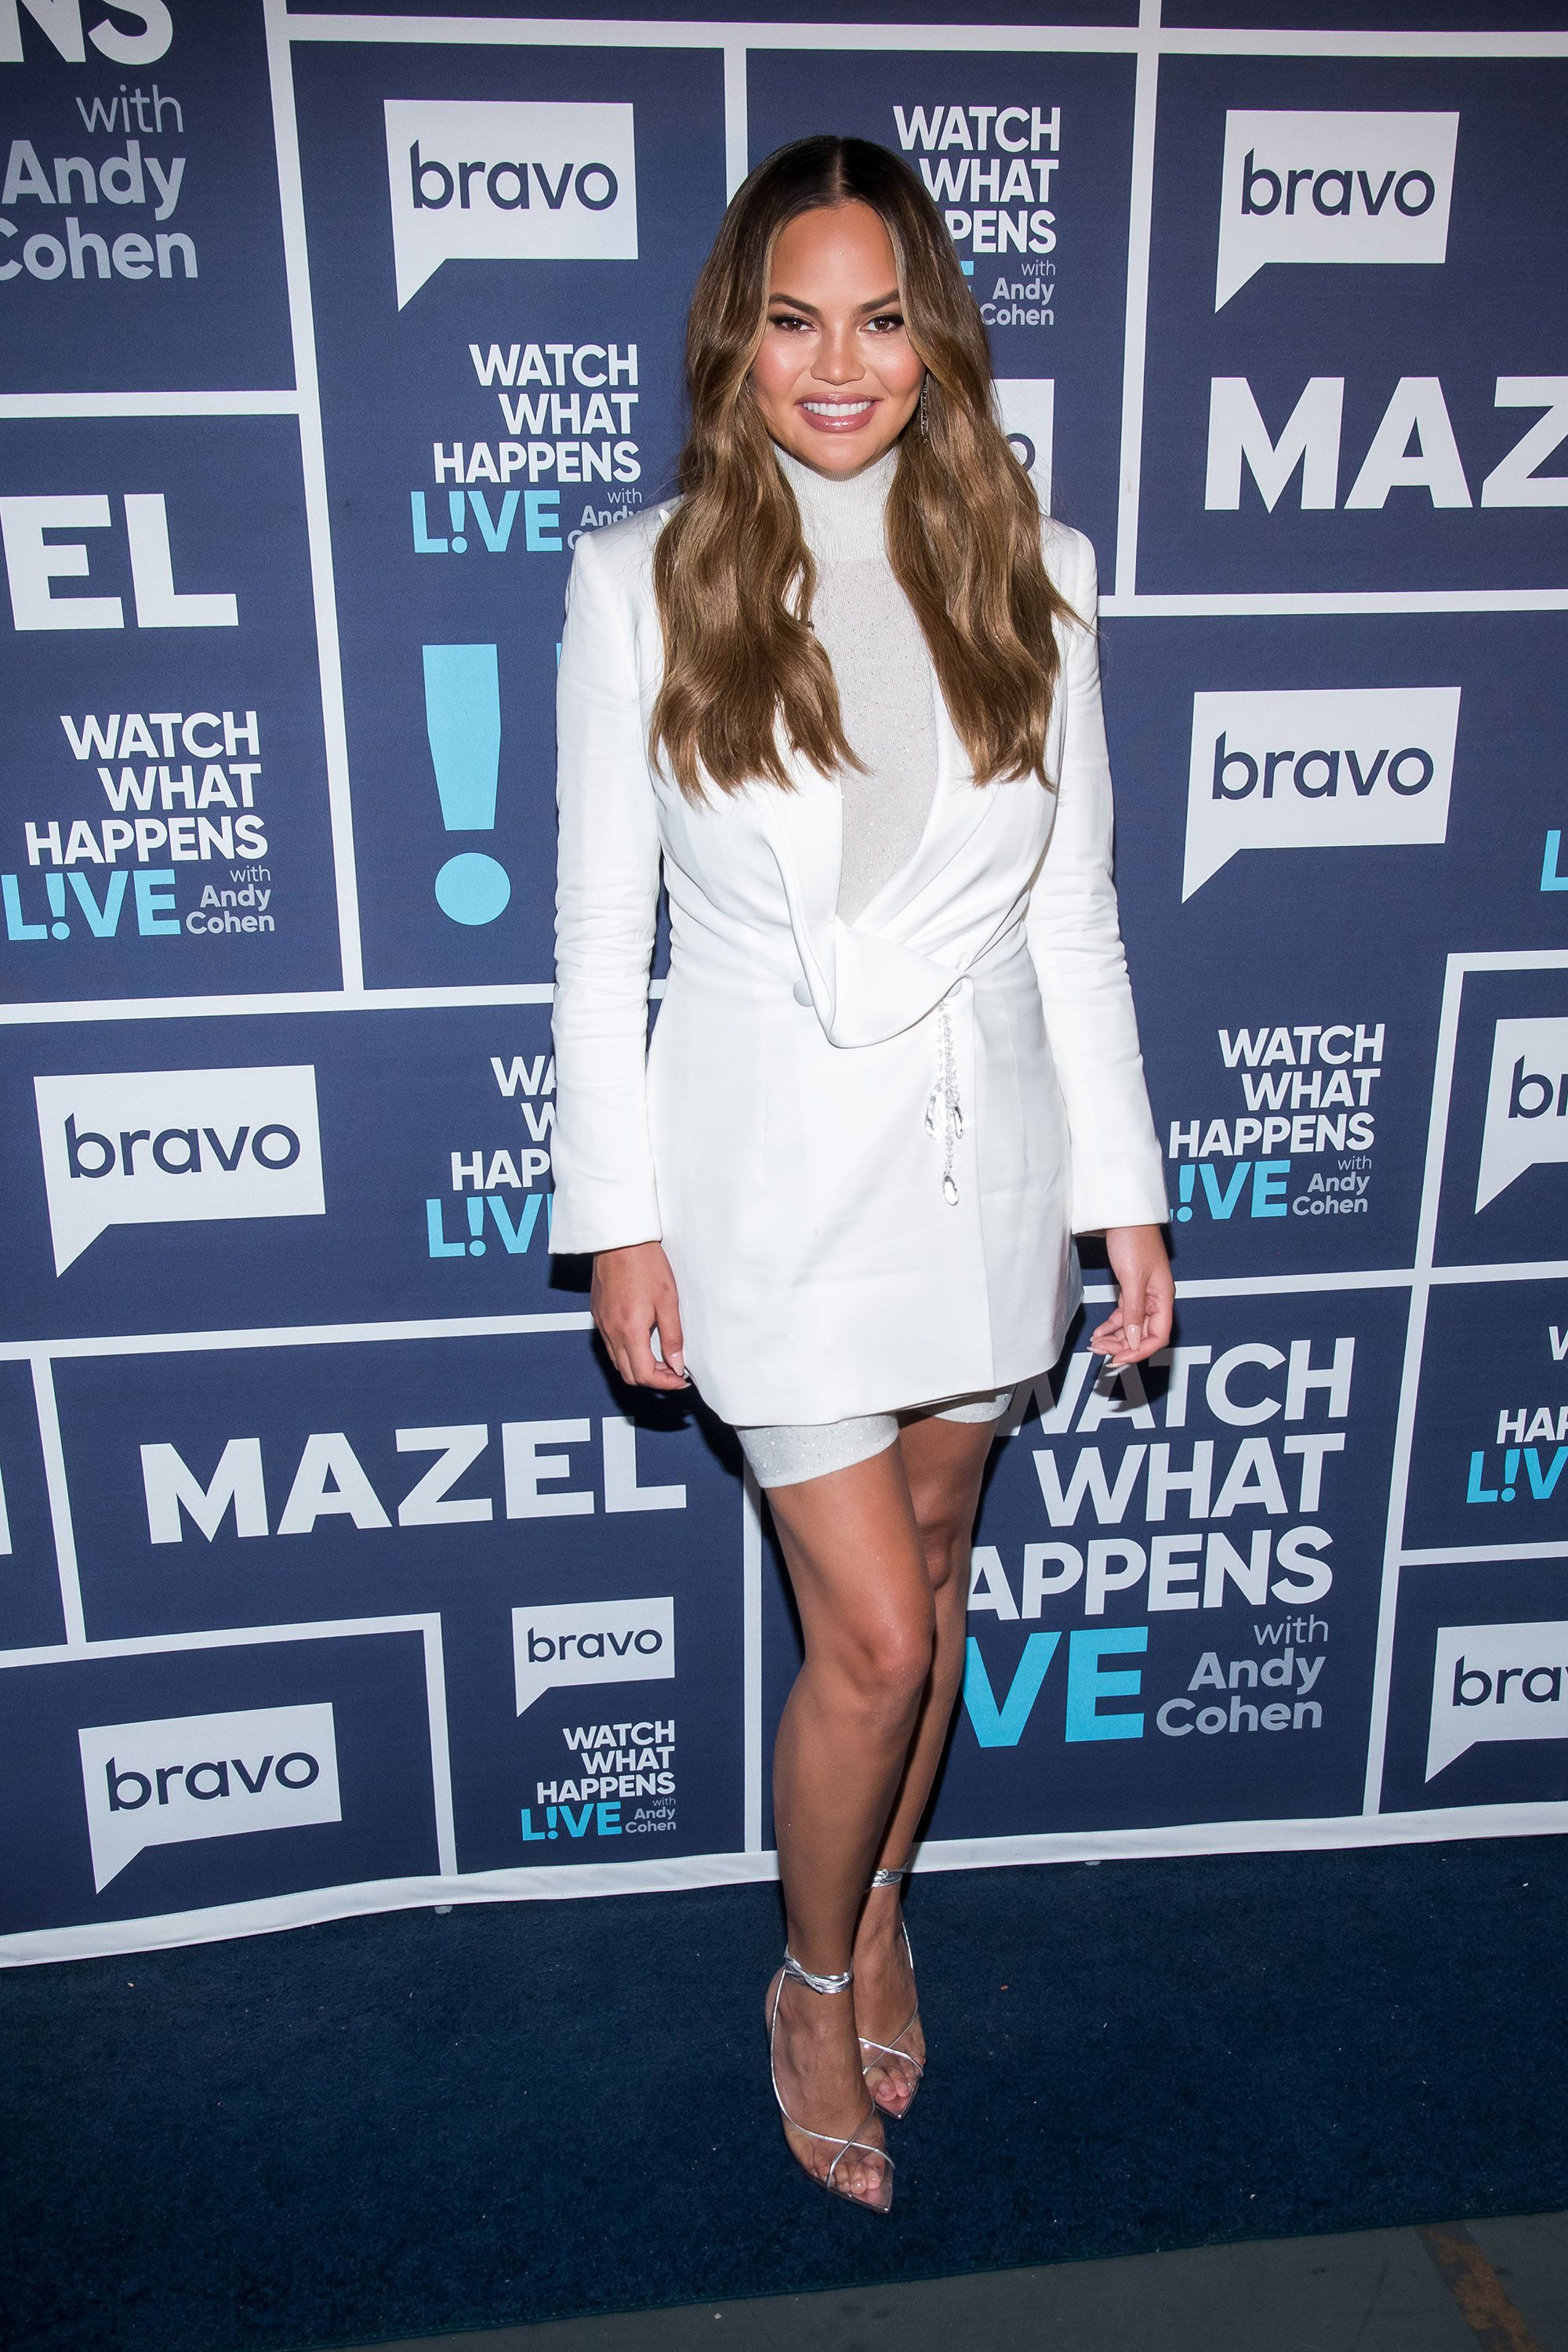 WATCH WHAT HAPPENS LIVE WITH ANDY COHEN -- Pictured: Chrissy Teigen -- (Photo by: Charles Sykes/Bravo/NBCU Photo Bank via Getty Images)